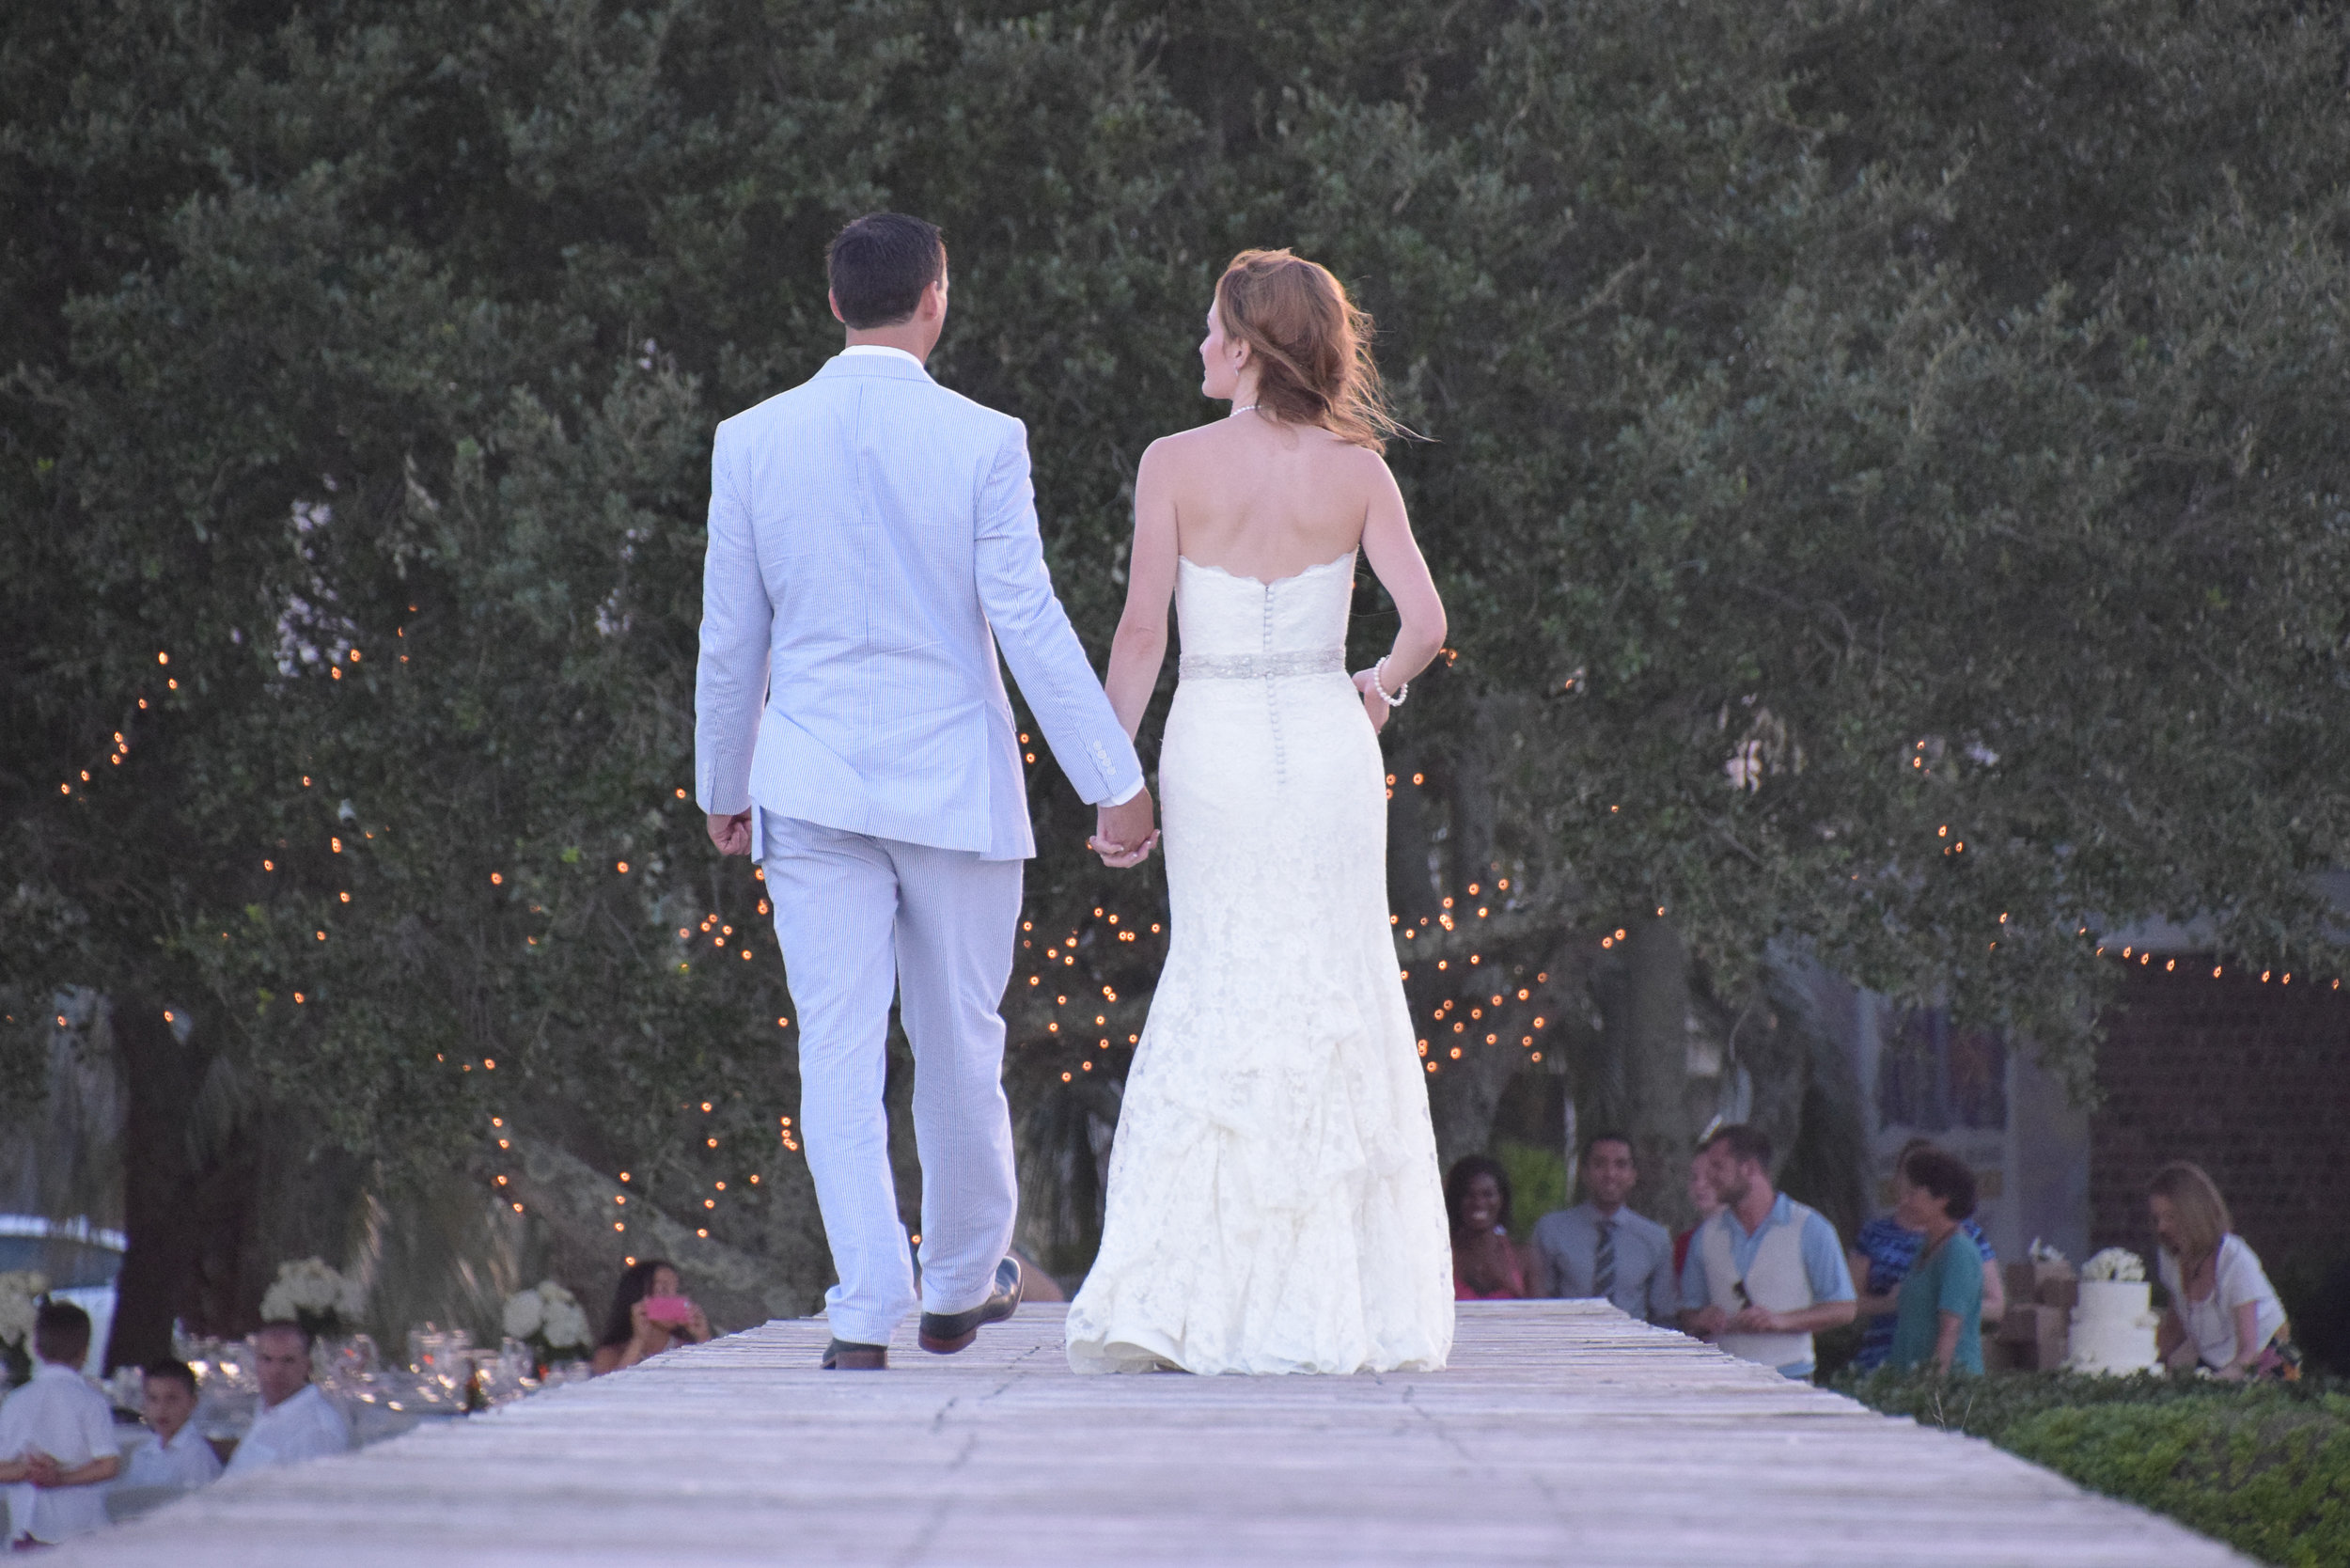 Bride and groom walking to reception.